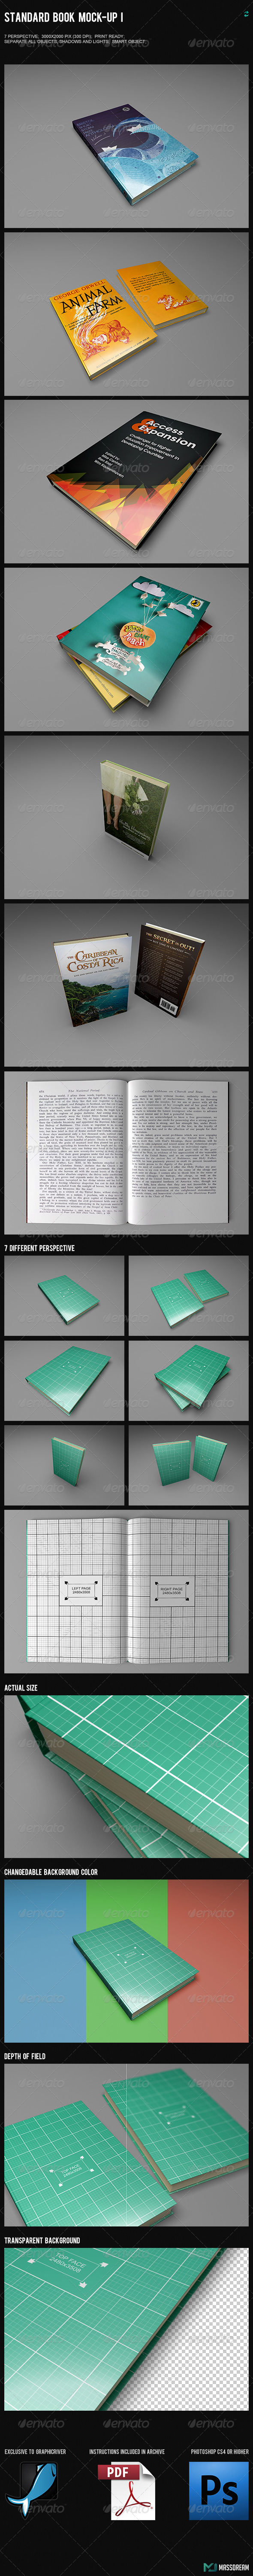 Standard Book Mock-Up I - Books Print